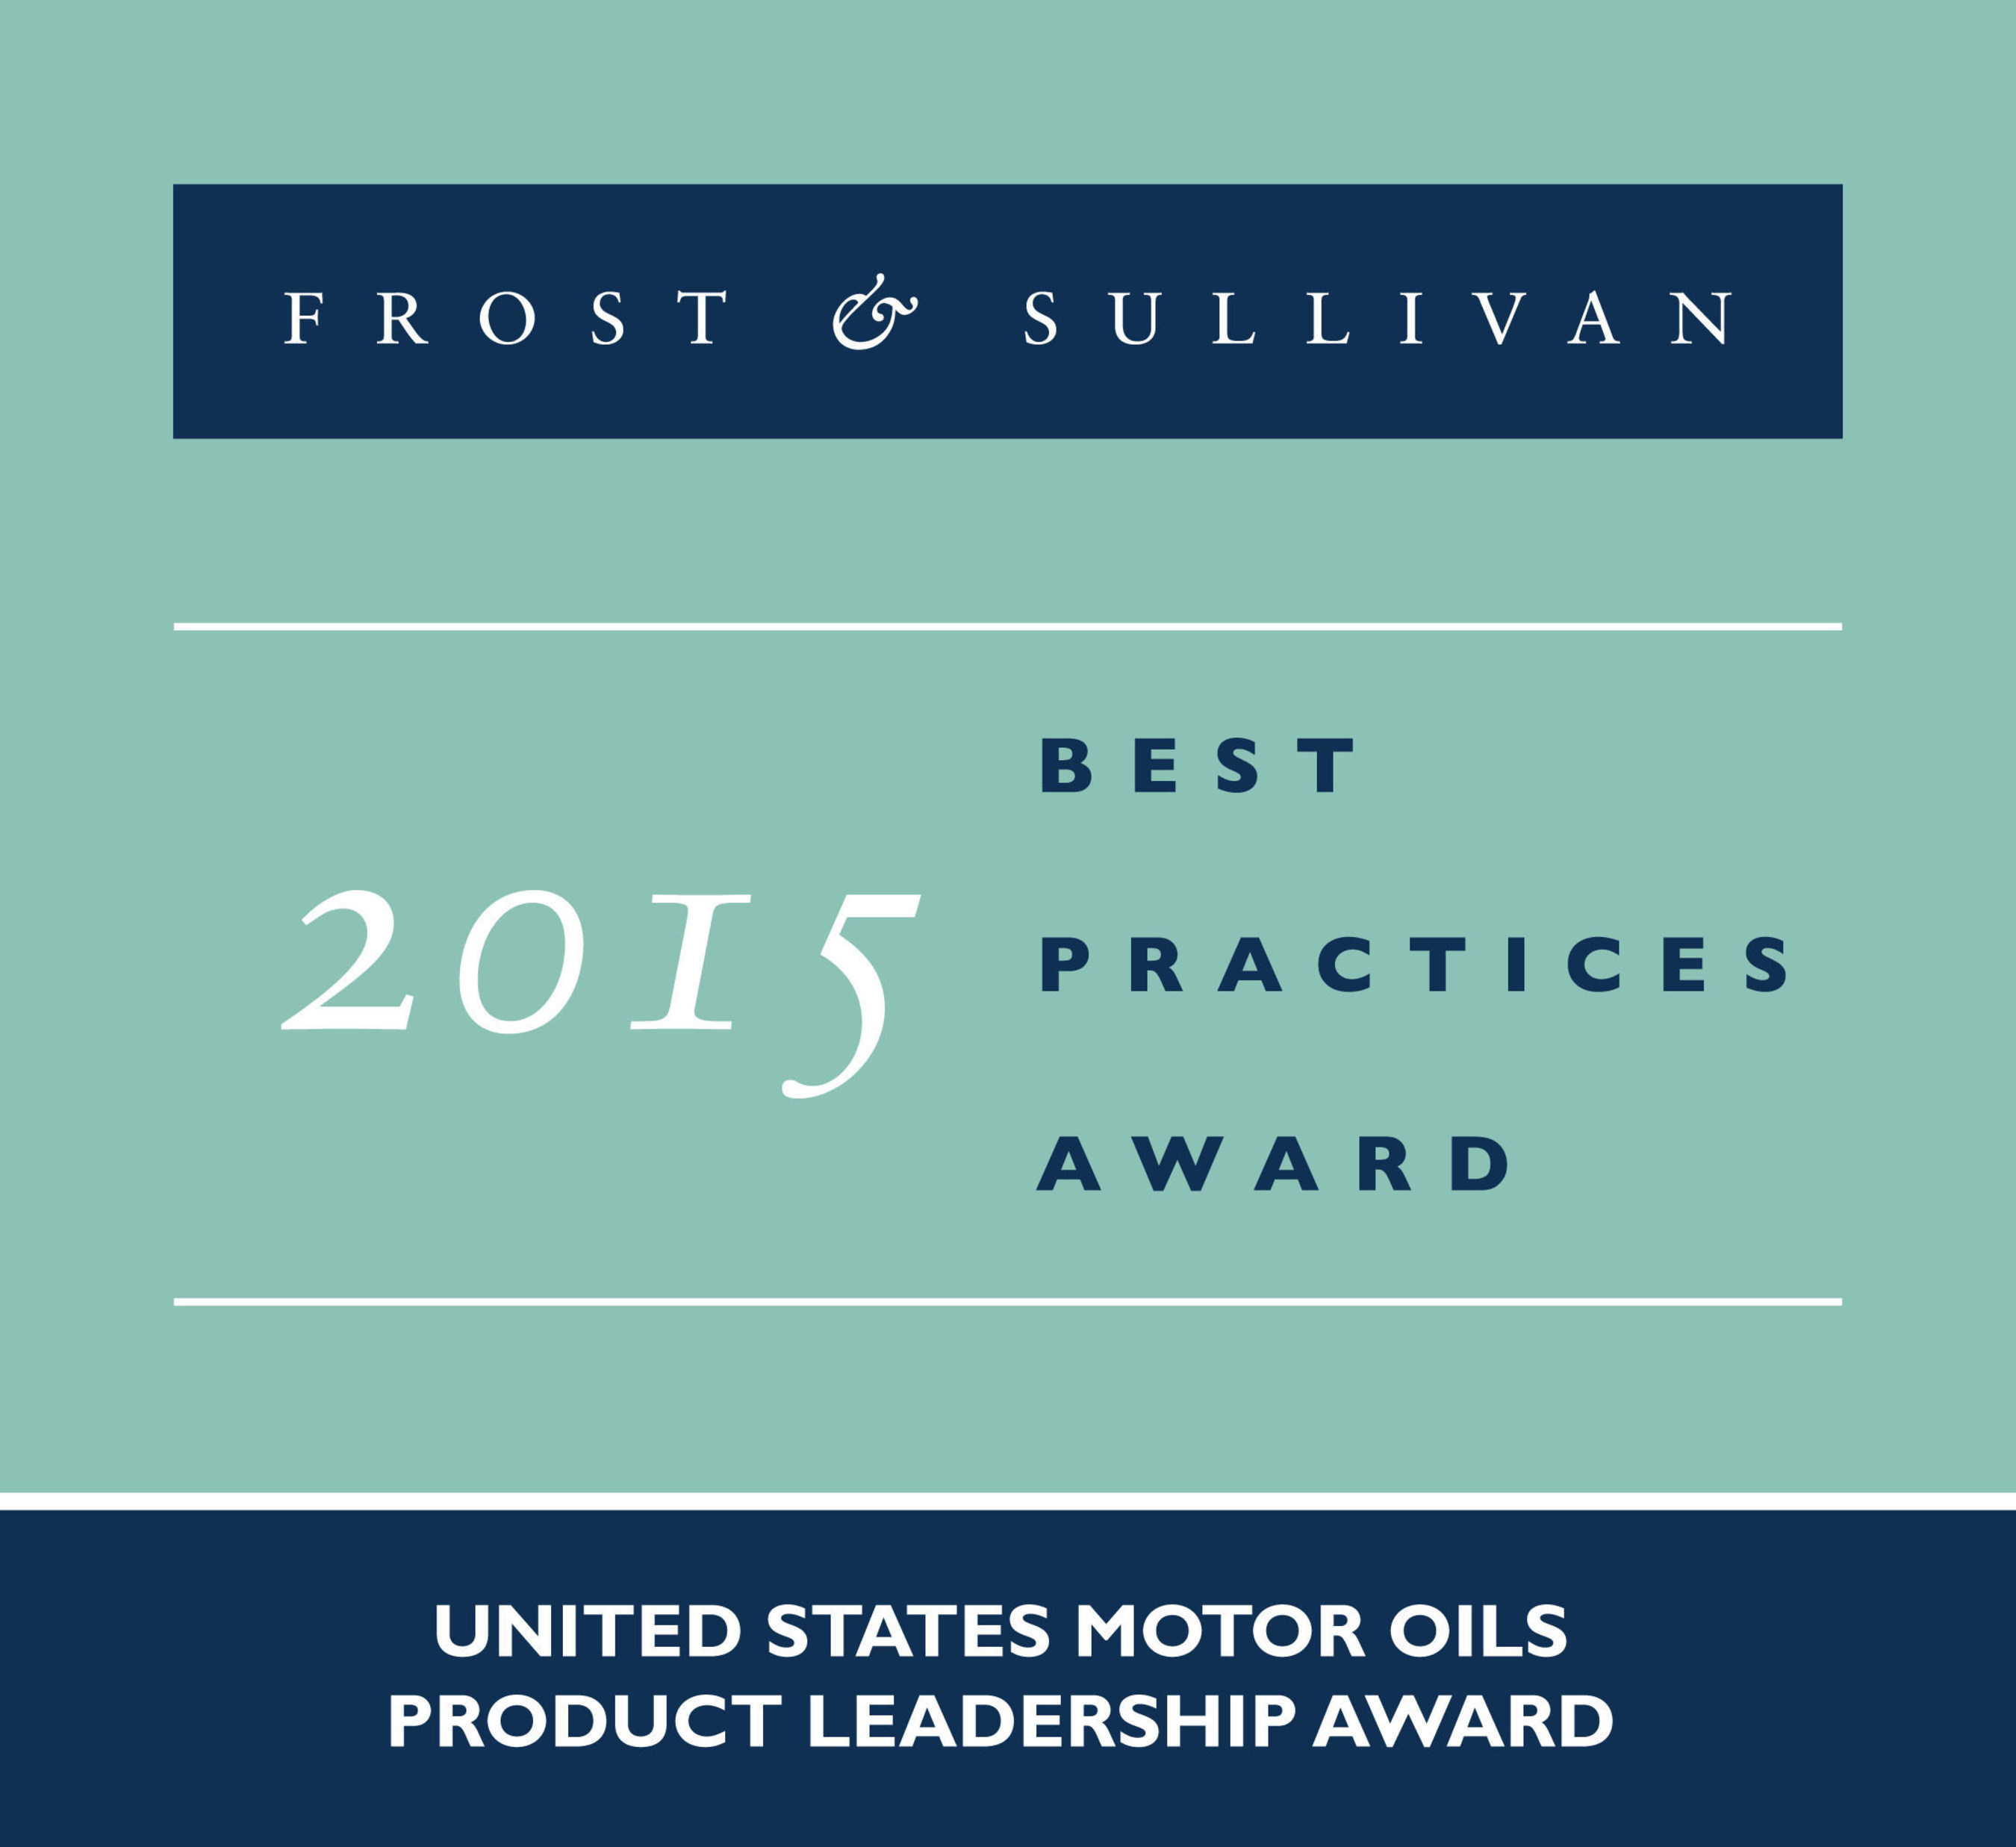 ExxonMobil Fuels and Lubricants Receives 2015 United States Motor Oils Product Leadership Award